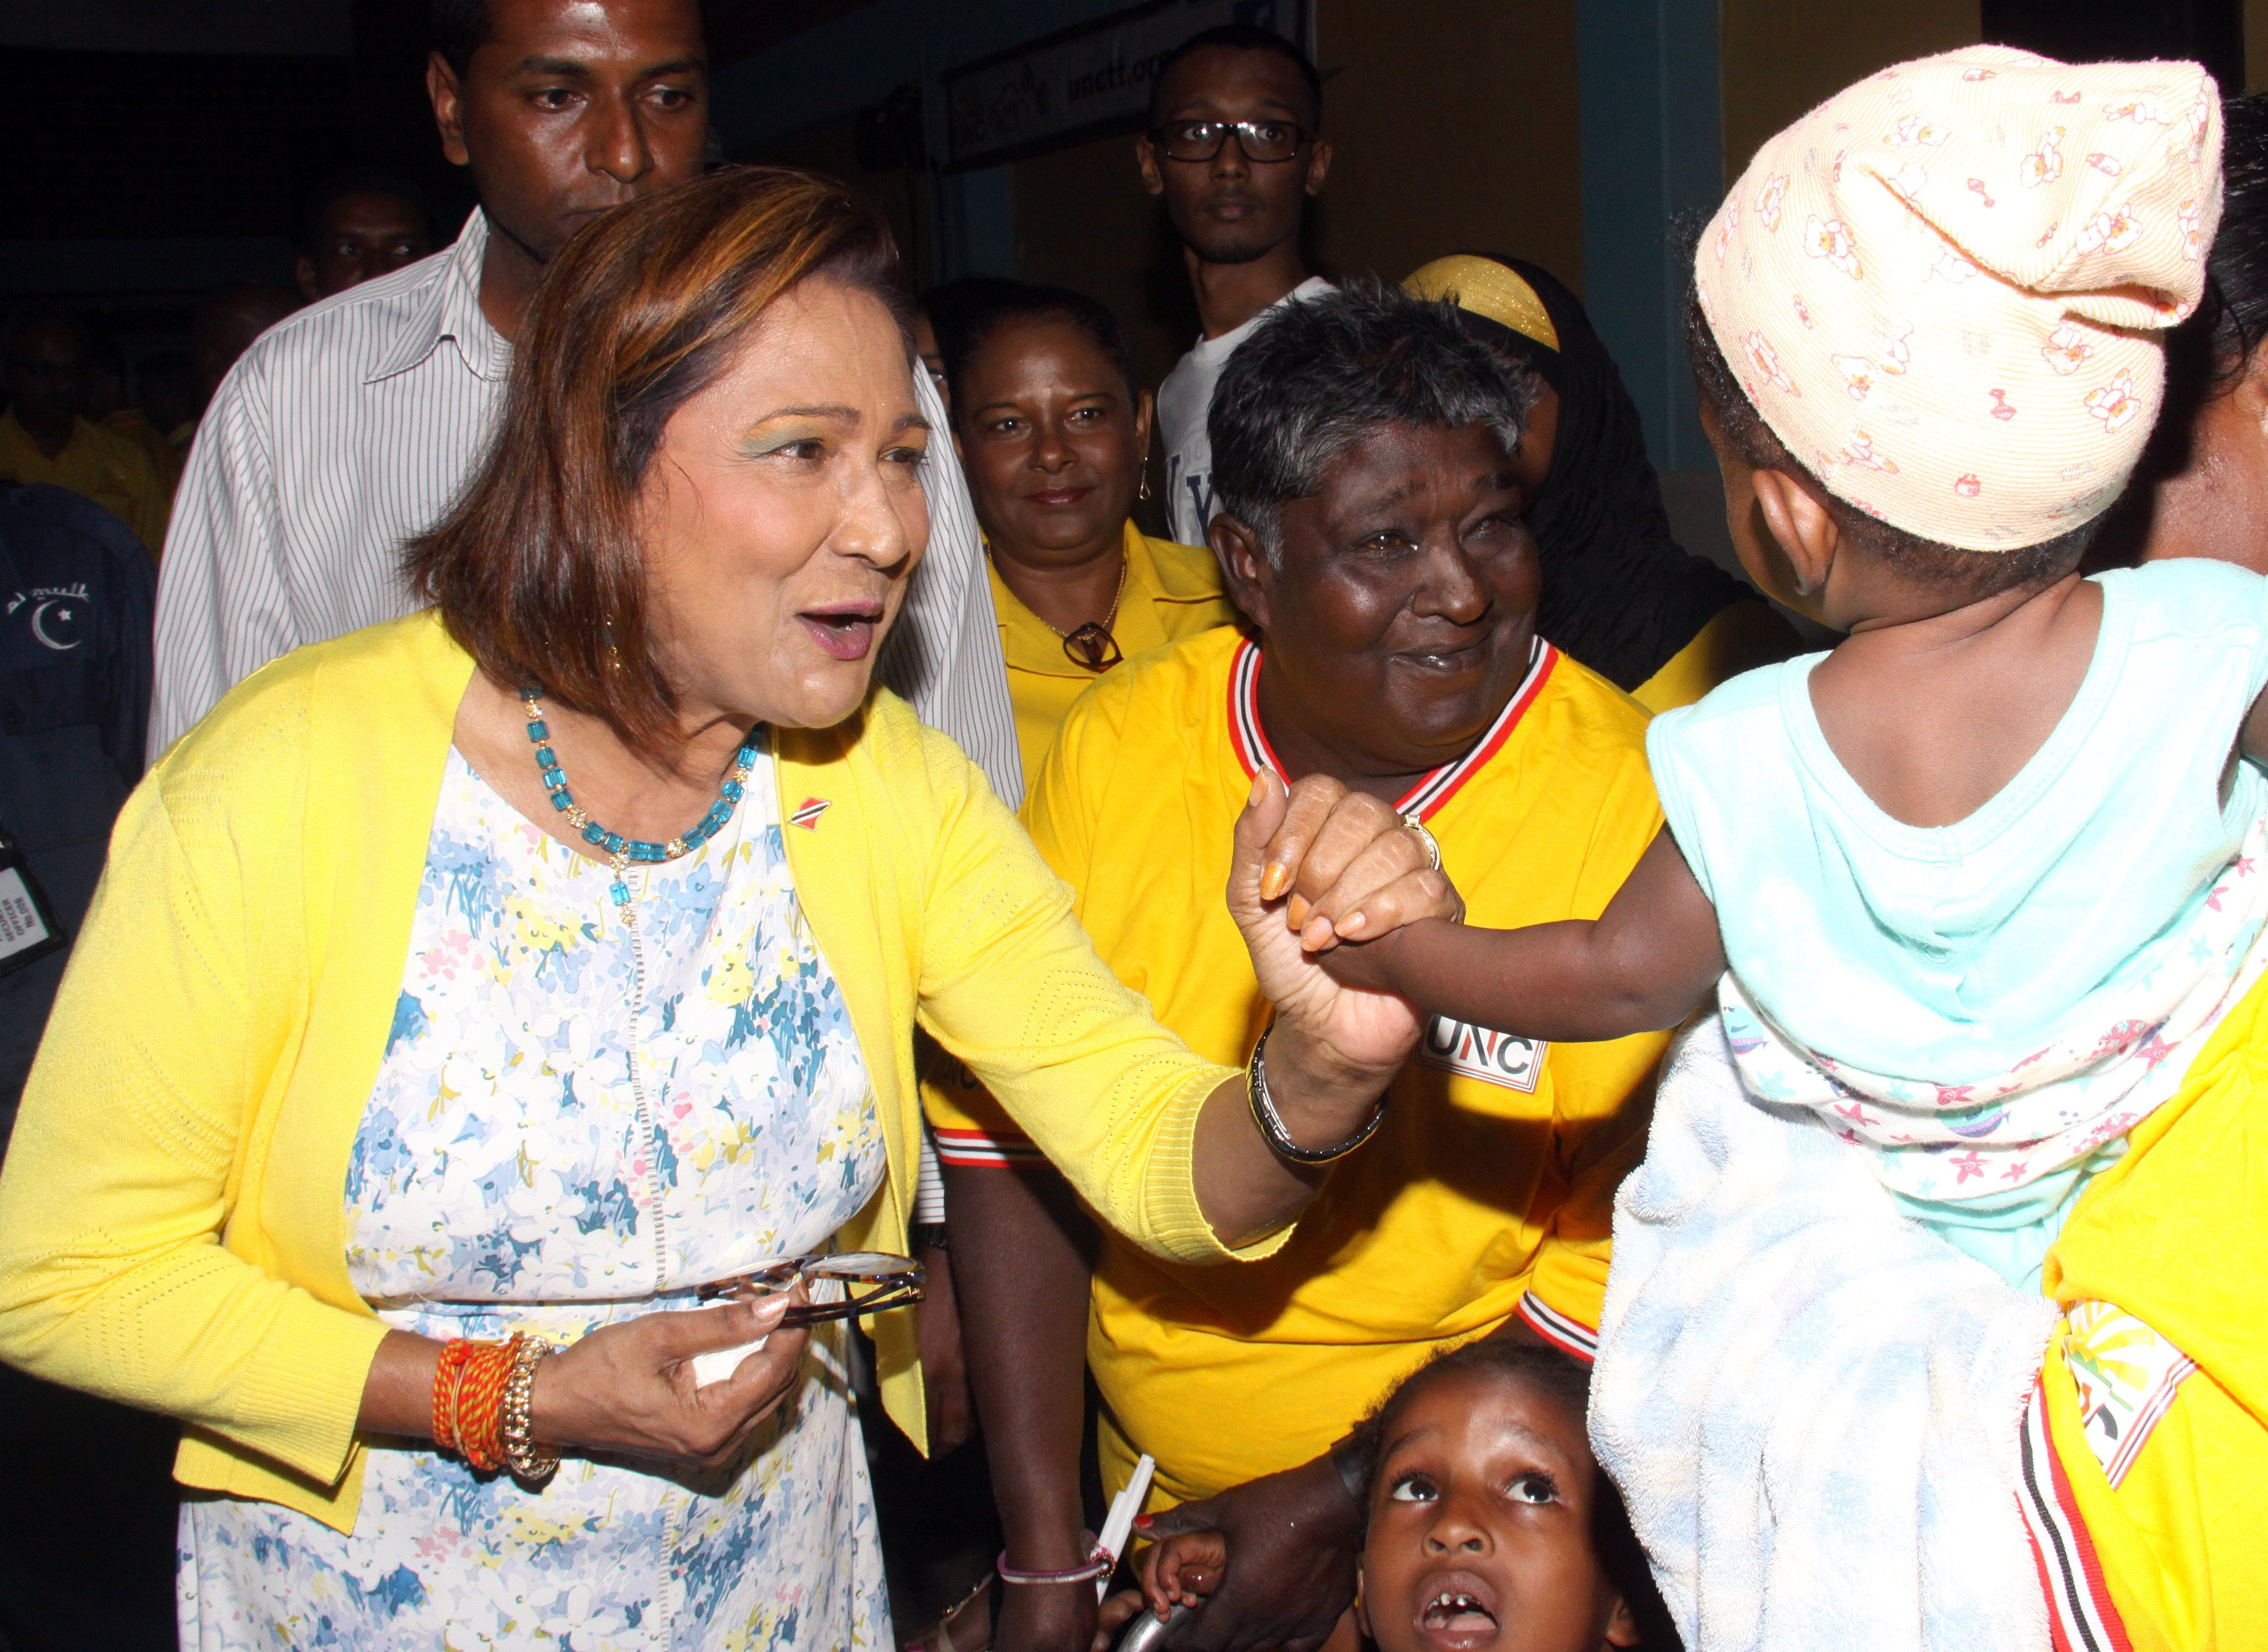 TELL MAMMY VOTE FOR ME: Opposition Leader Kamla Persad-Bissessar plays with a baby as she arrived at the UNC's Monday Night Forum at the St Joseph Secondary School.  PHOTO BY ANGELO MARCELLE